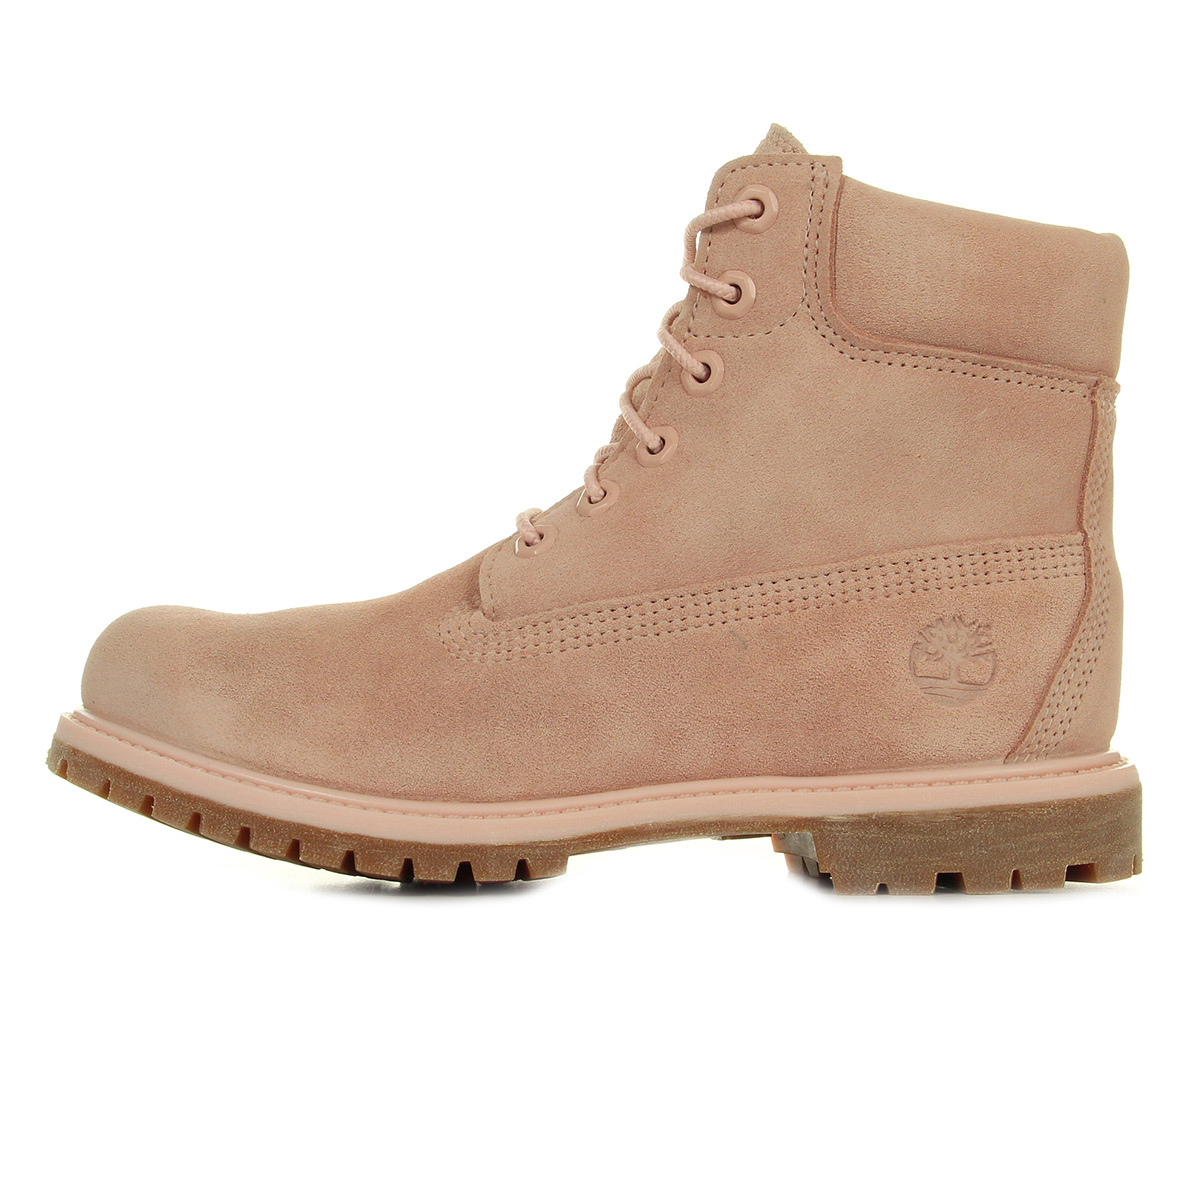 Timberland 6 In Premium Suede WP Cameo Rose CA1P7C, Boots femme